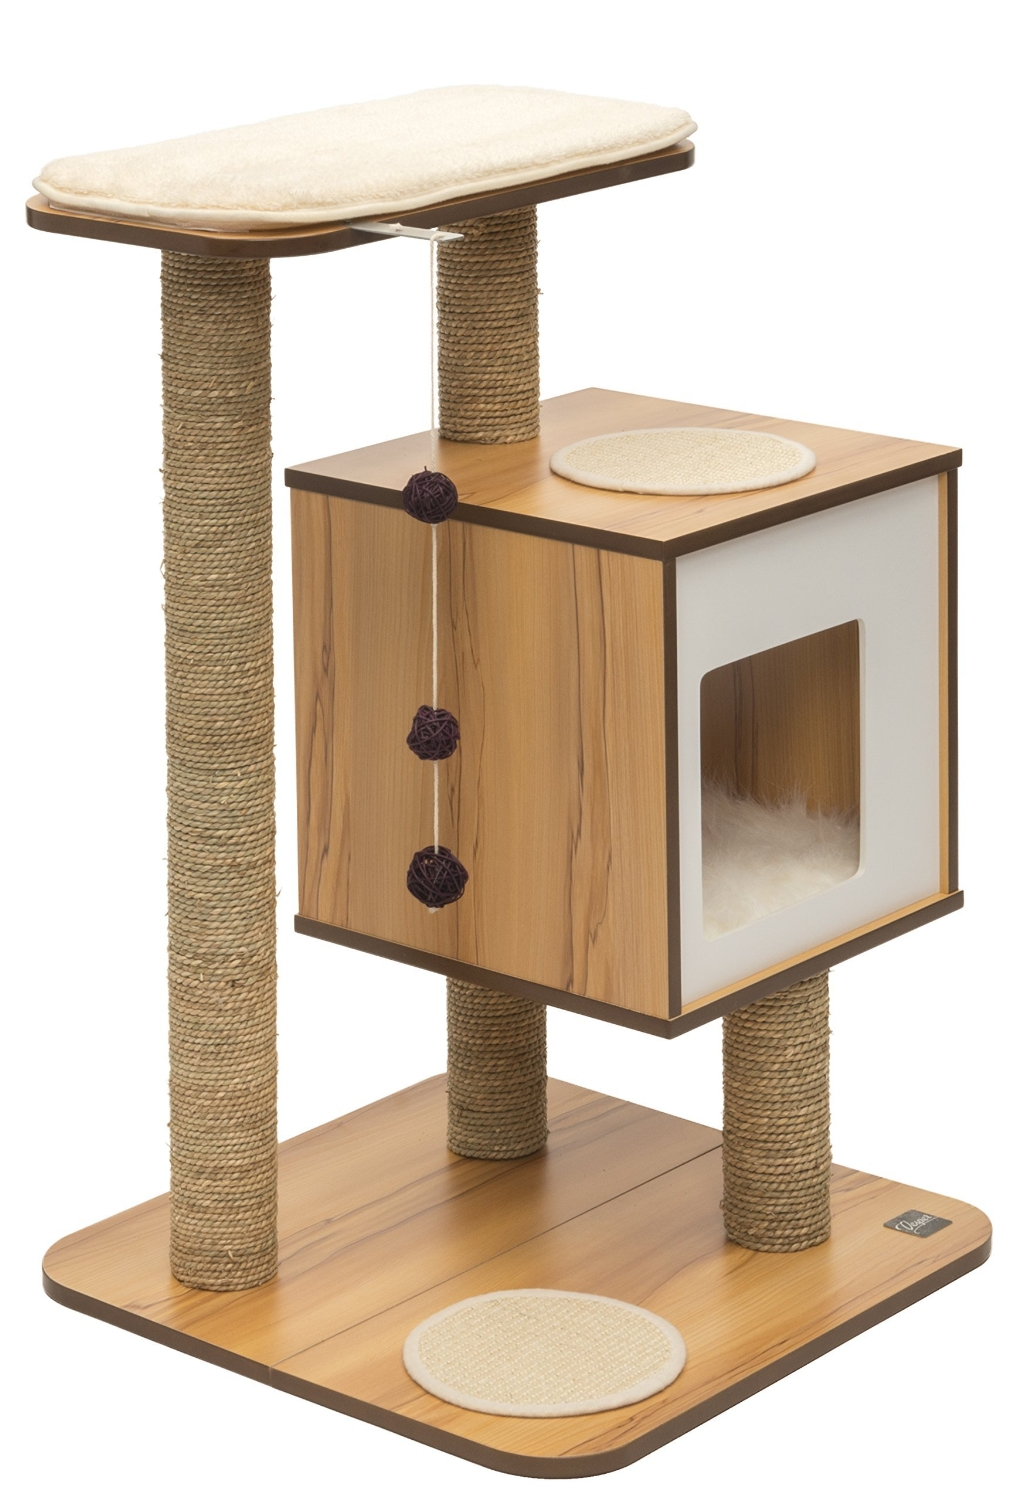 Vesper Cat Climbing Play House – Multiple Colors and Designs